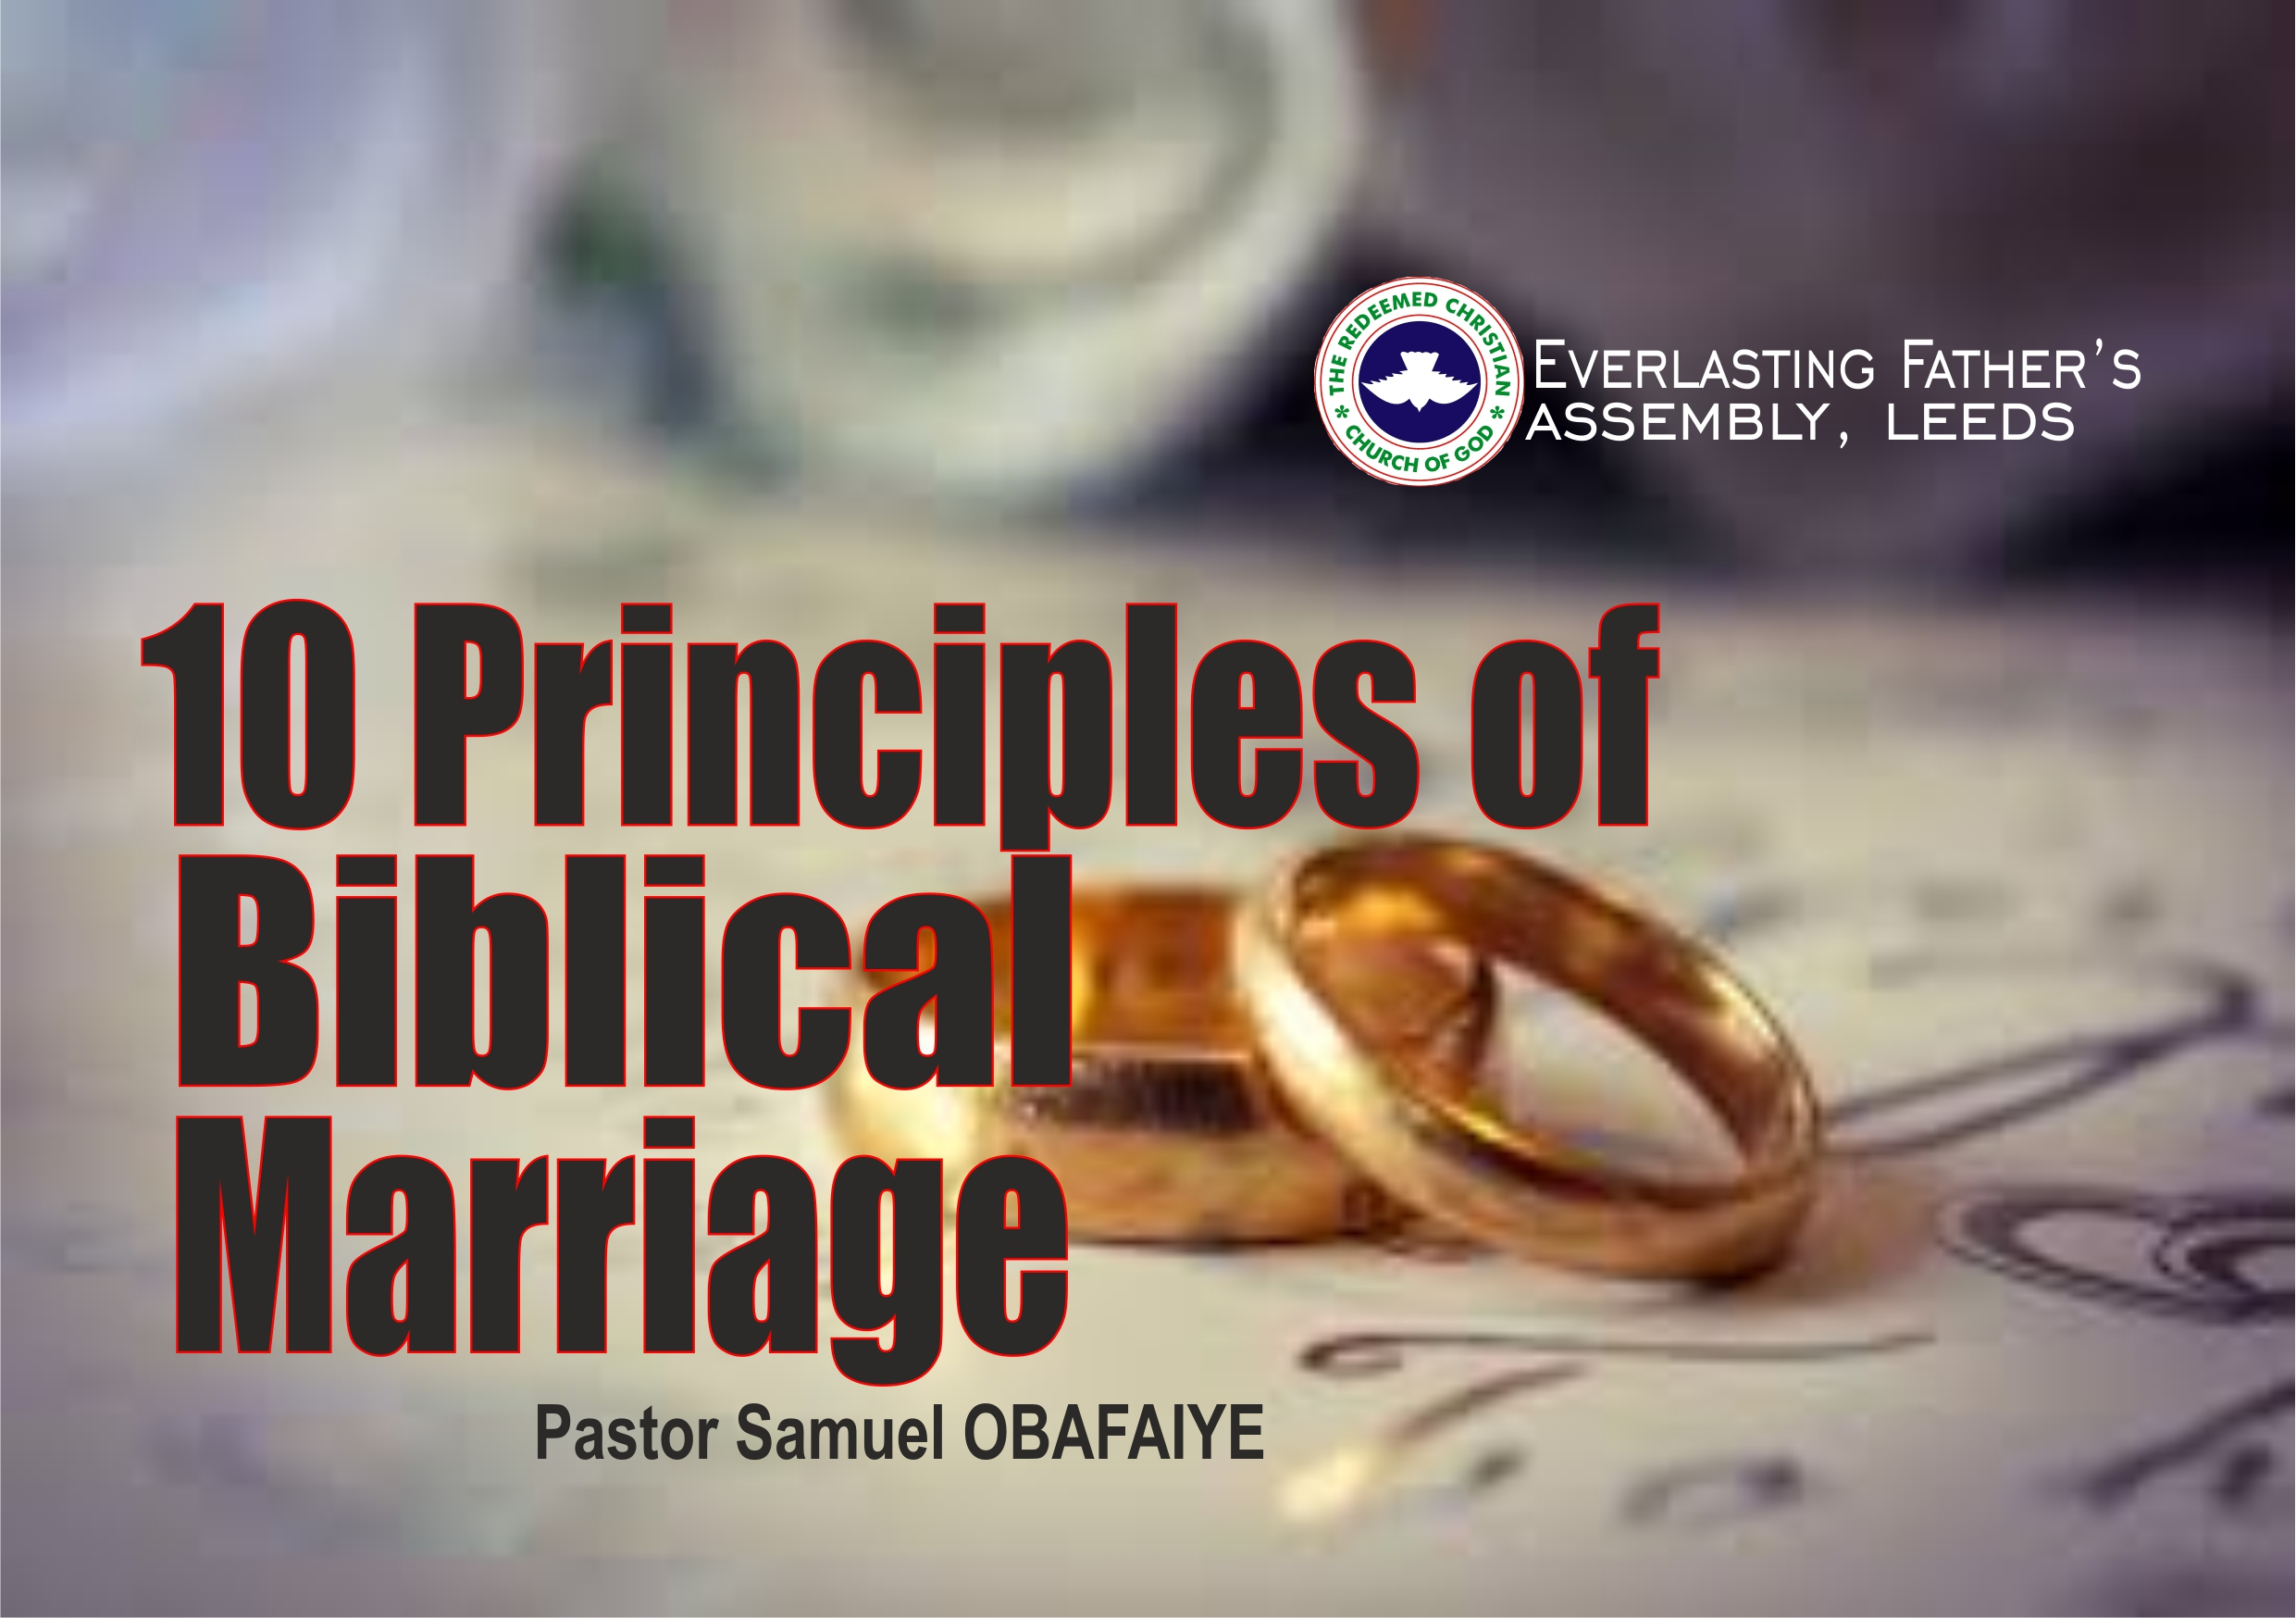 Ten Principles of Biblical Marriage, by Pastor Samuel Obafaiye